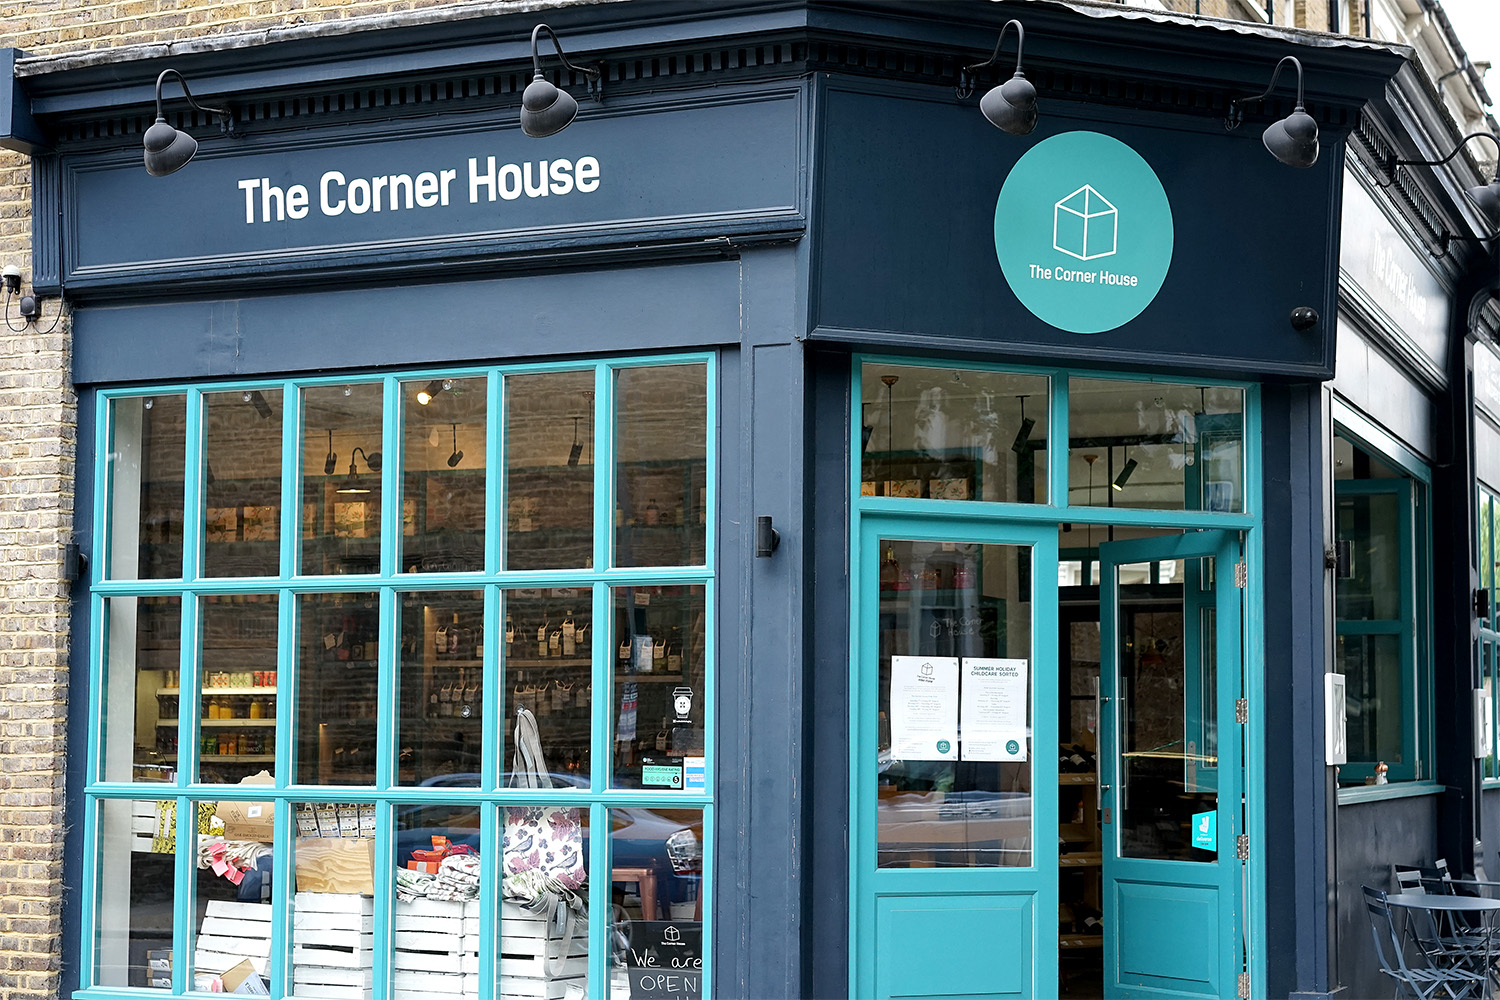 thecornerhouse1.jpg